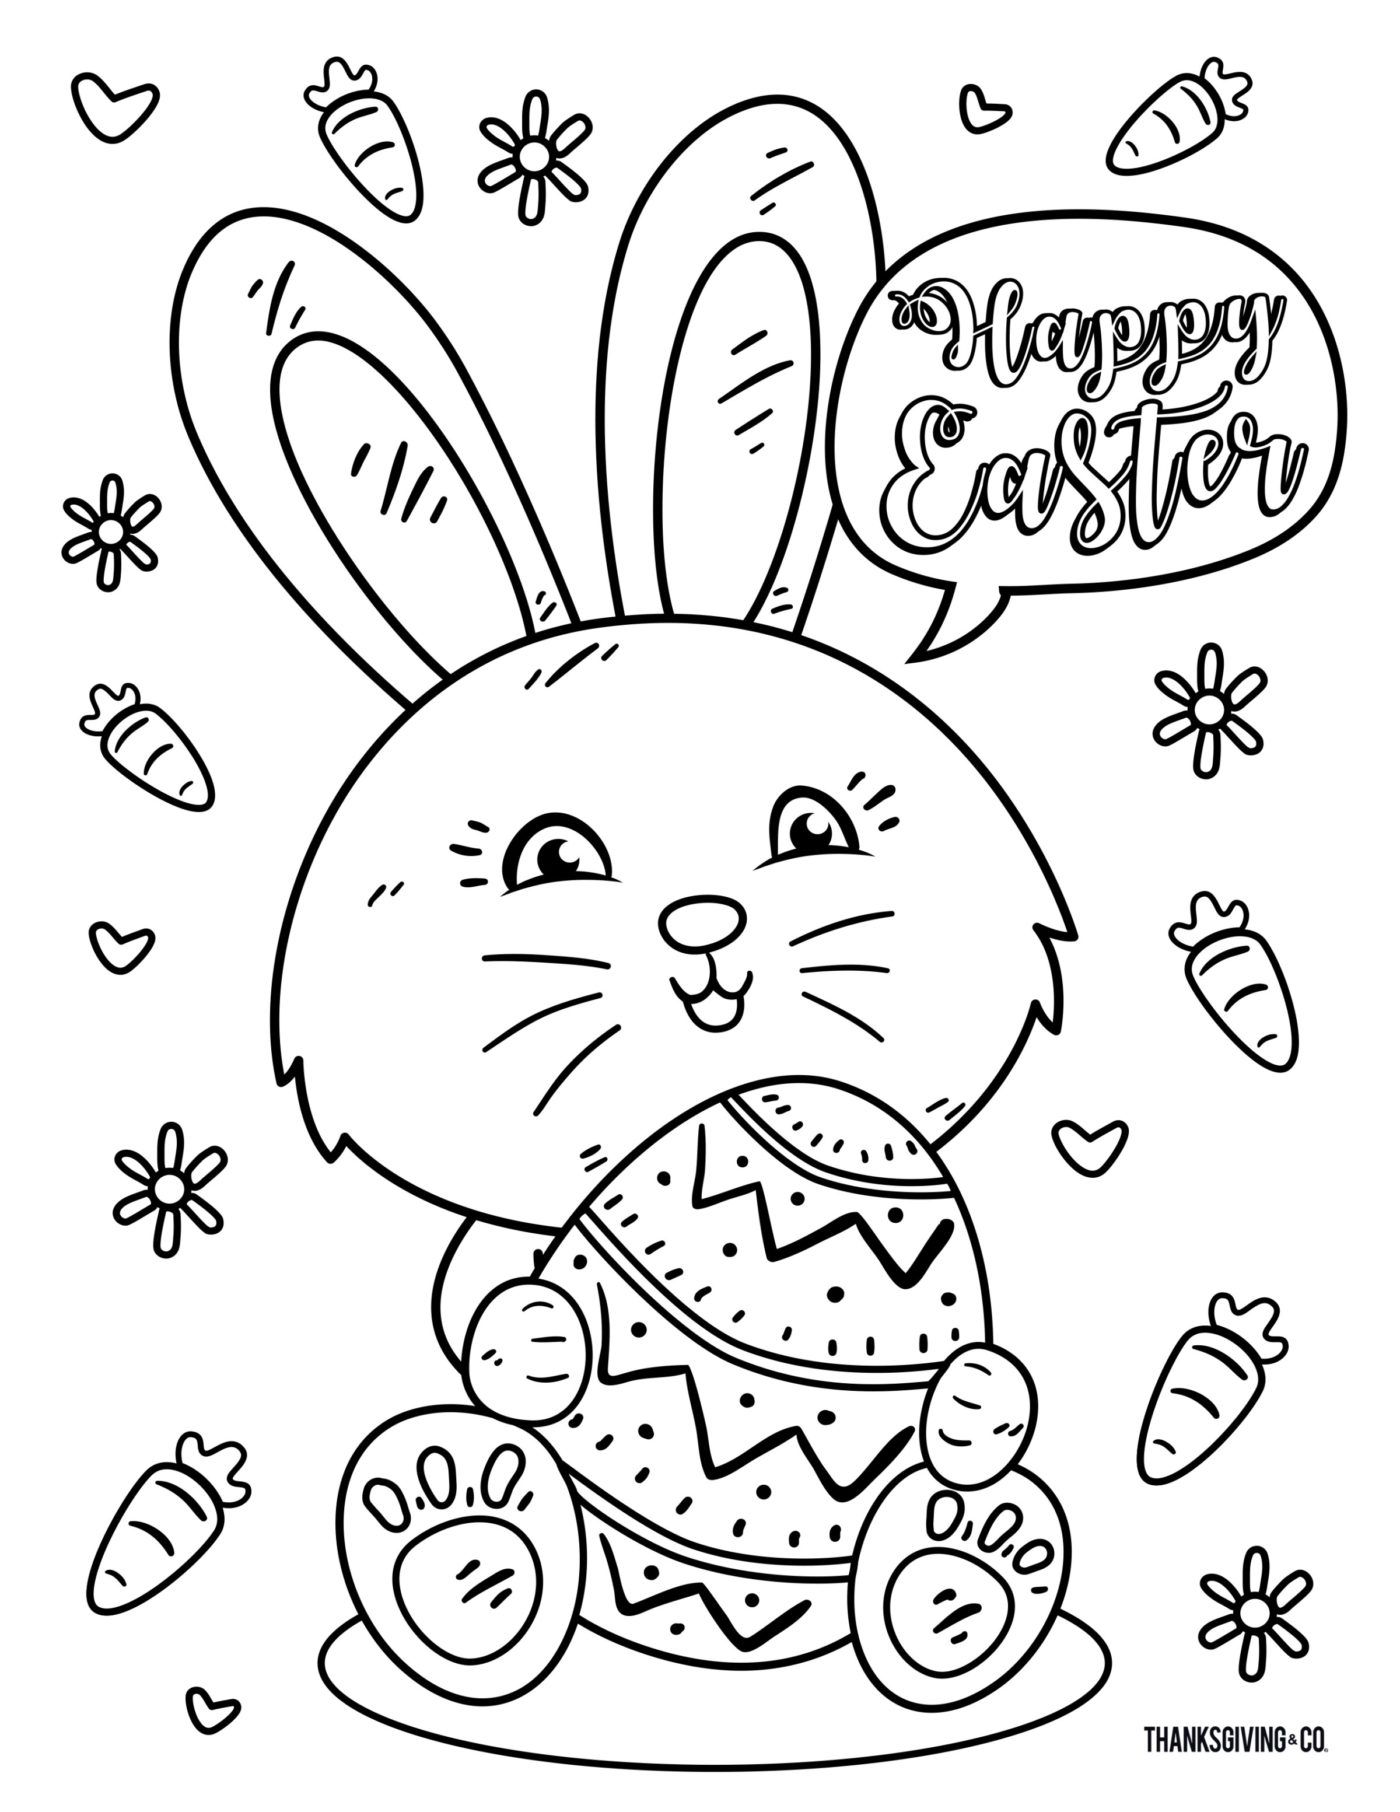 8 Free Printable Easter Coloring Pages Your Kids Will Love From Makeitgrateful Com East Easter Printables Free Easter Coloring Book Easter Coloring Pictures